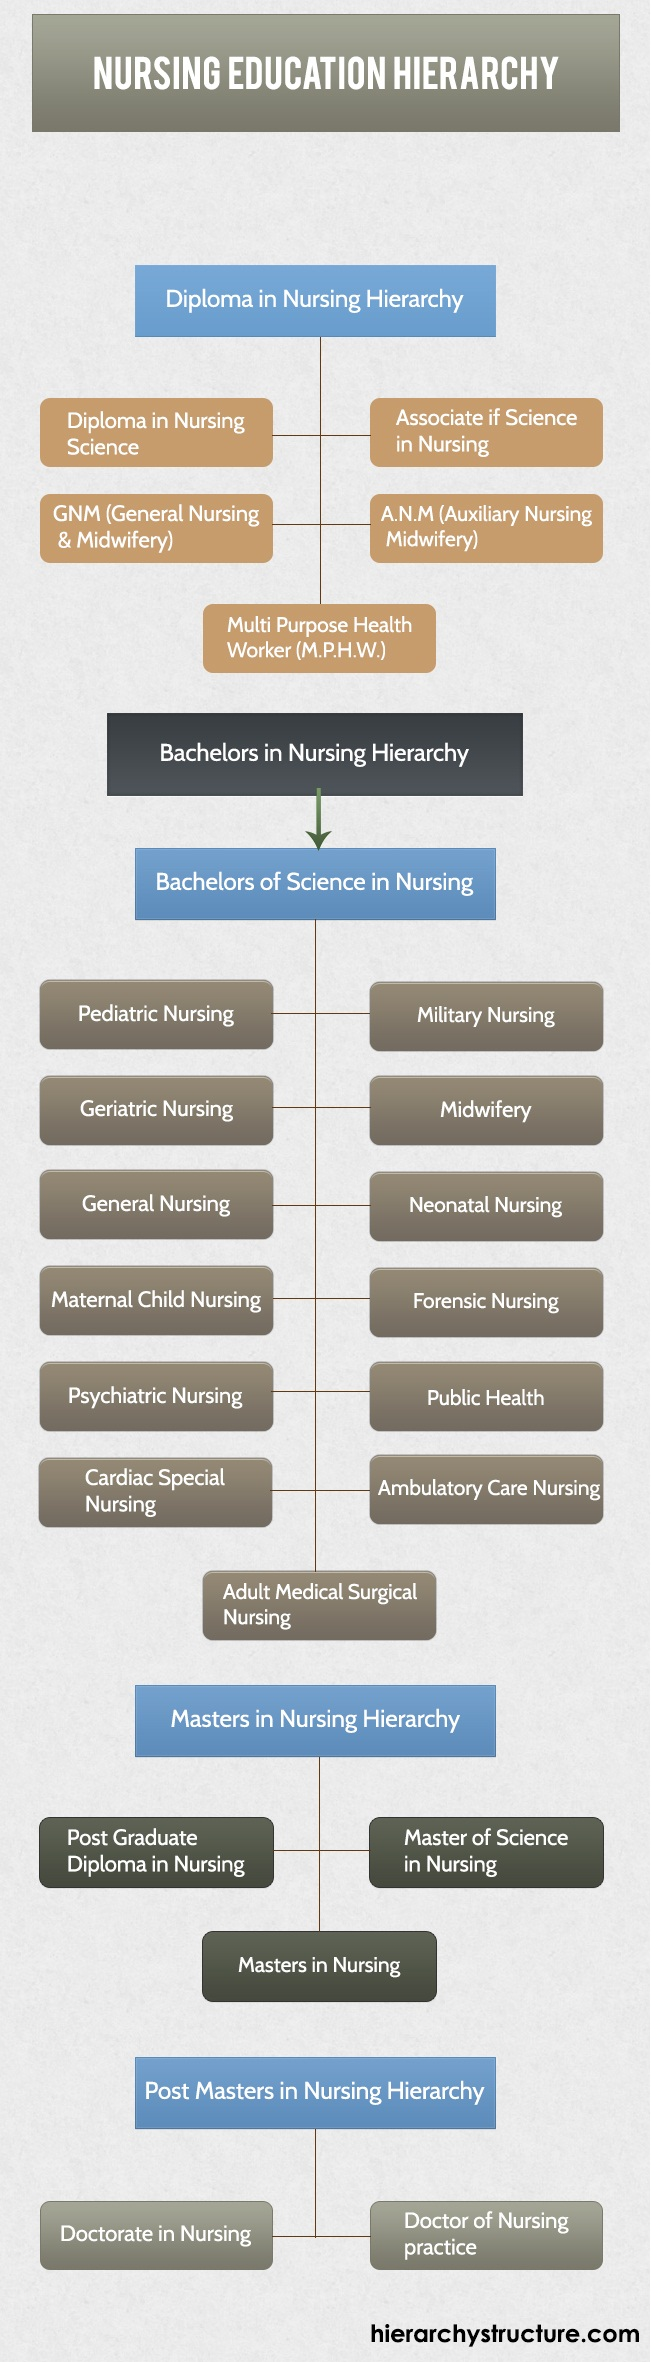 Nursing Degree Hierarchy Plan | Hierarchy structure